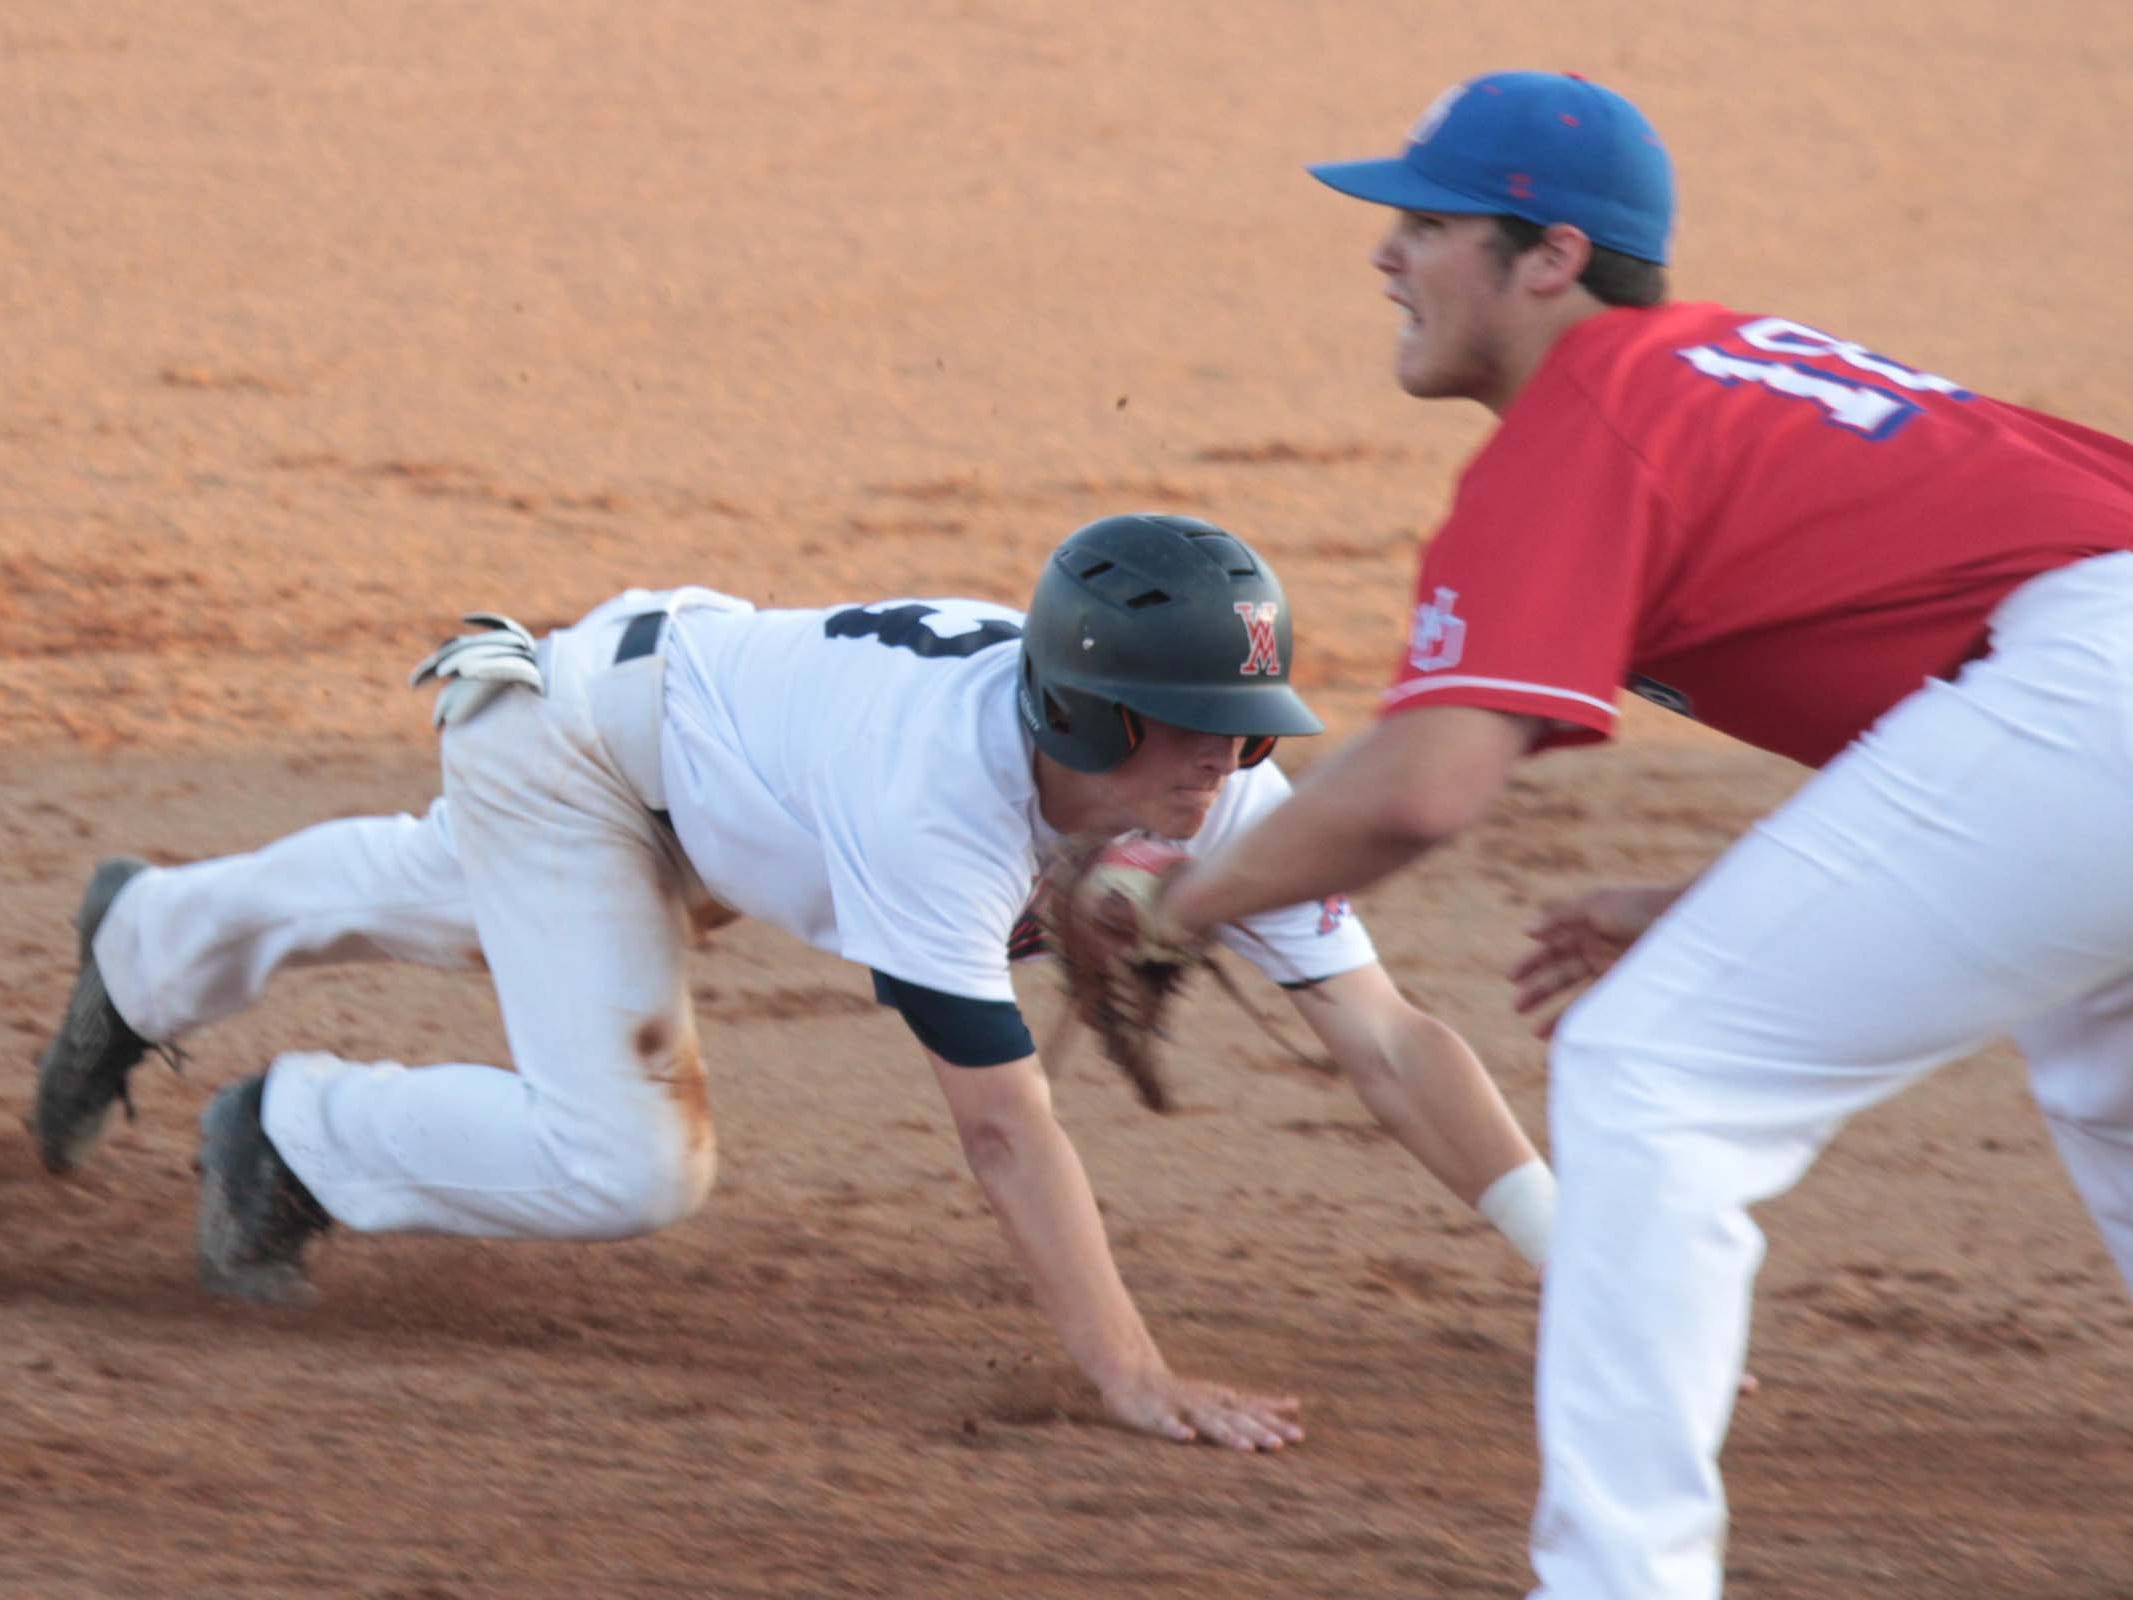 West Monroe and West Ouachita meet in baseball action in early April. No. 8 West Ouachita beat No. 25 South Terrebonne 2-1 in the first round of the LHSAA Class 4A baseball playoffs Tuesday in Cadeville.